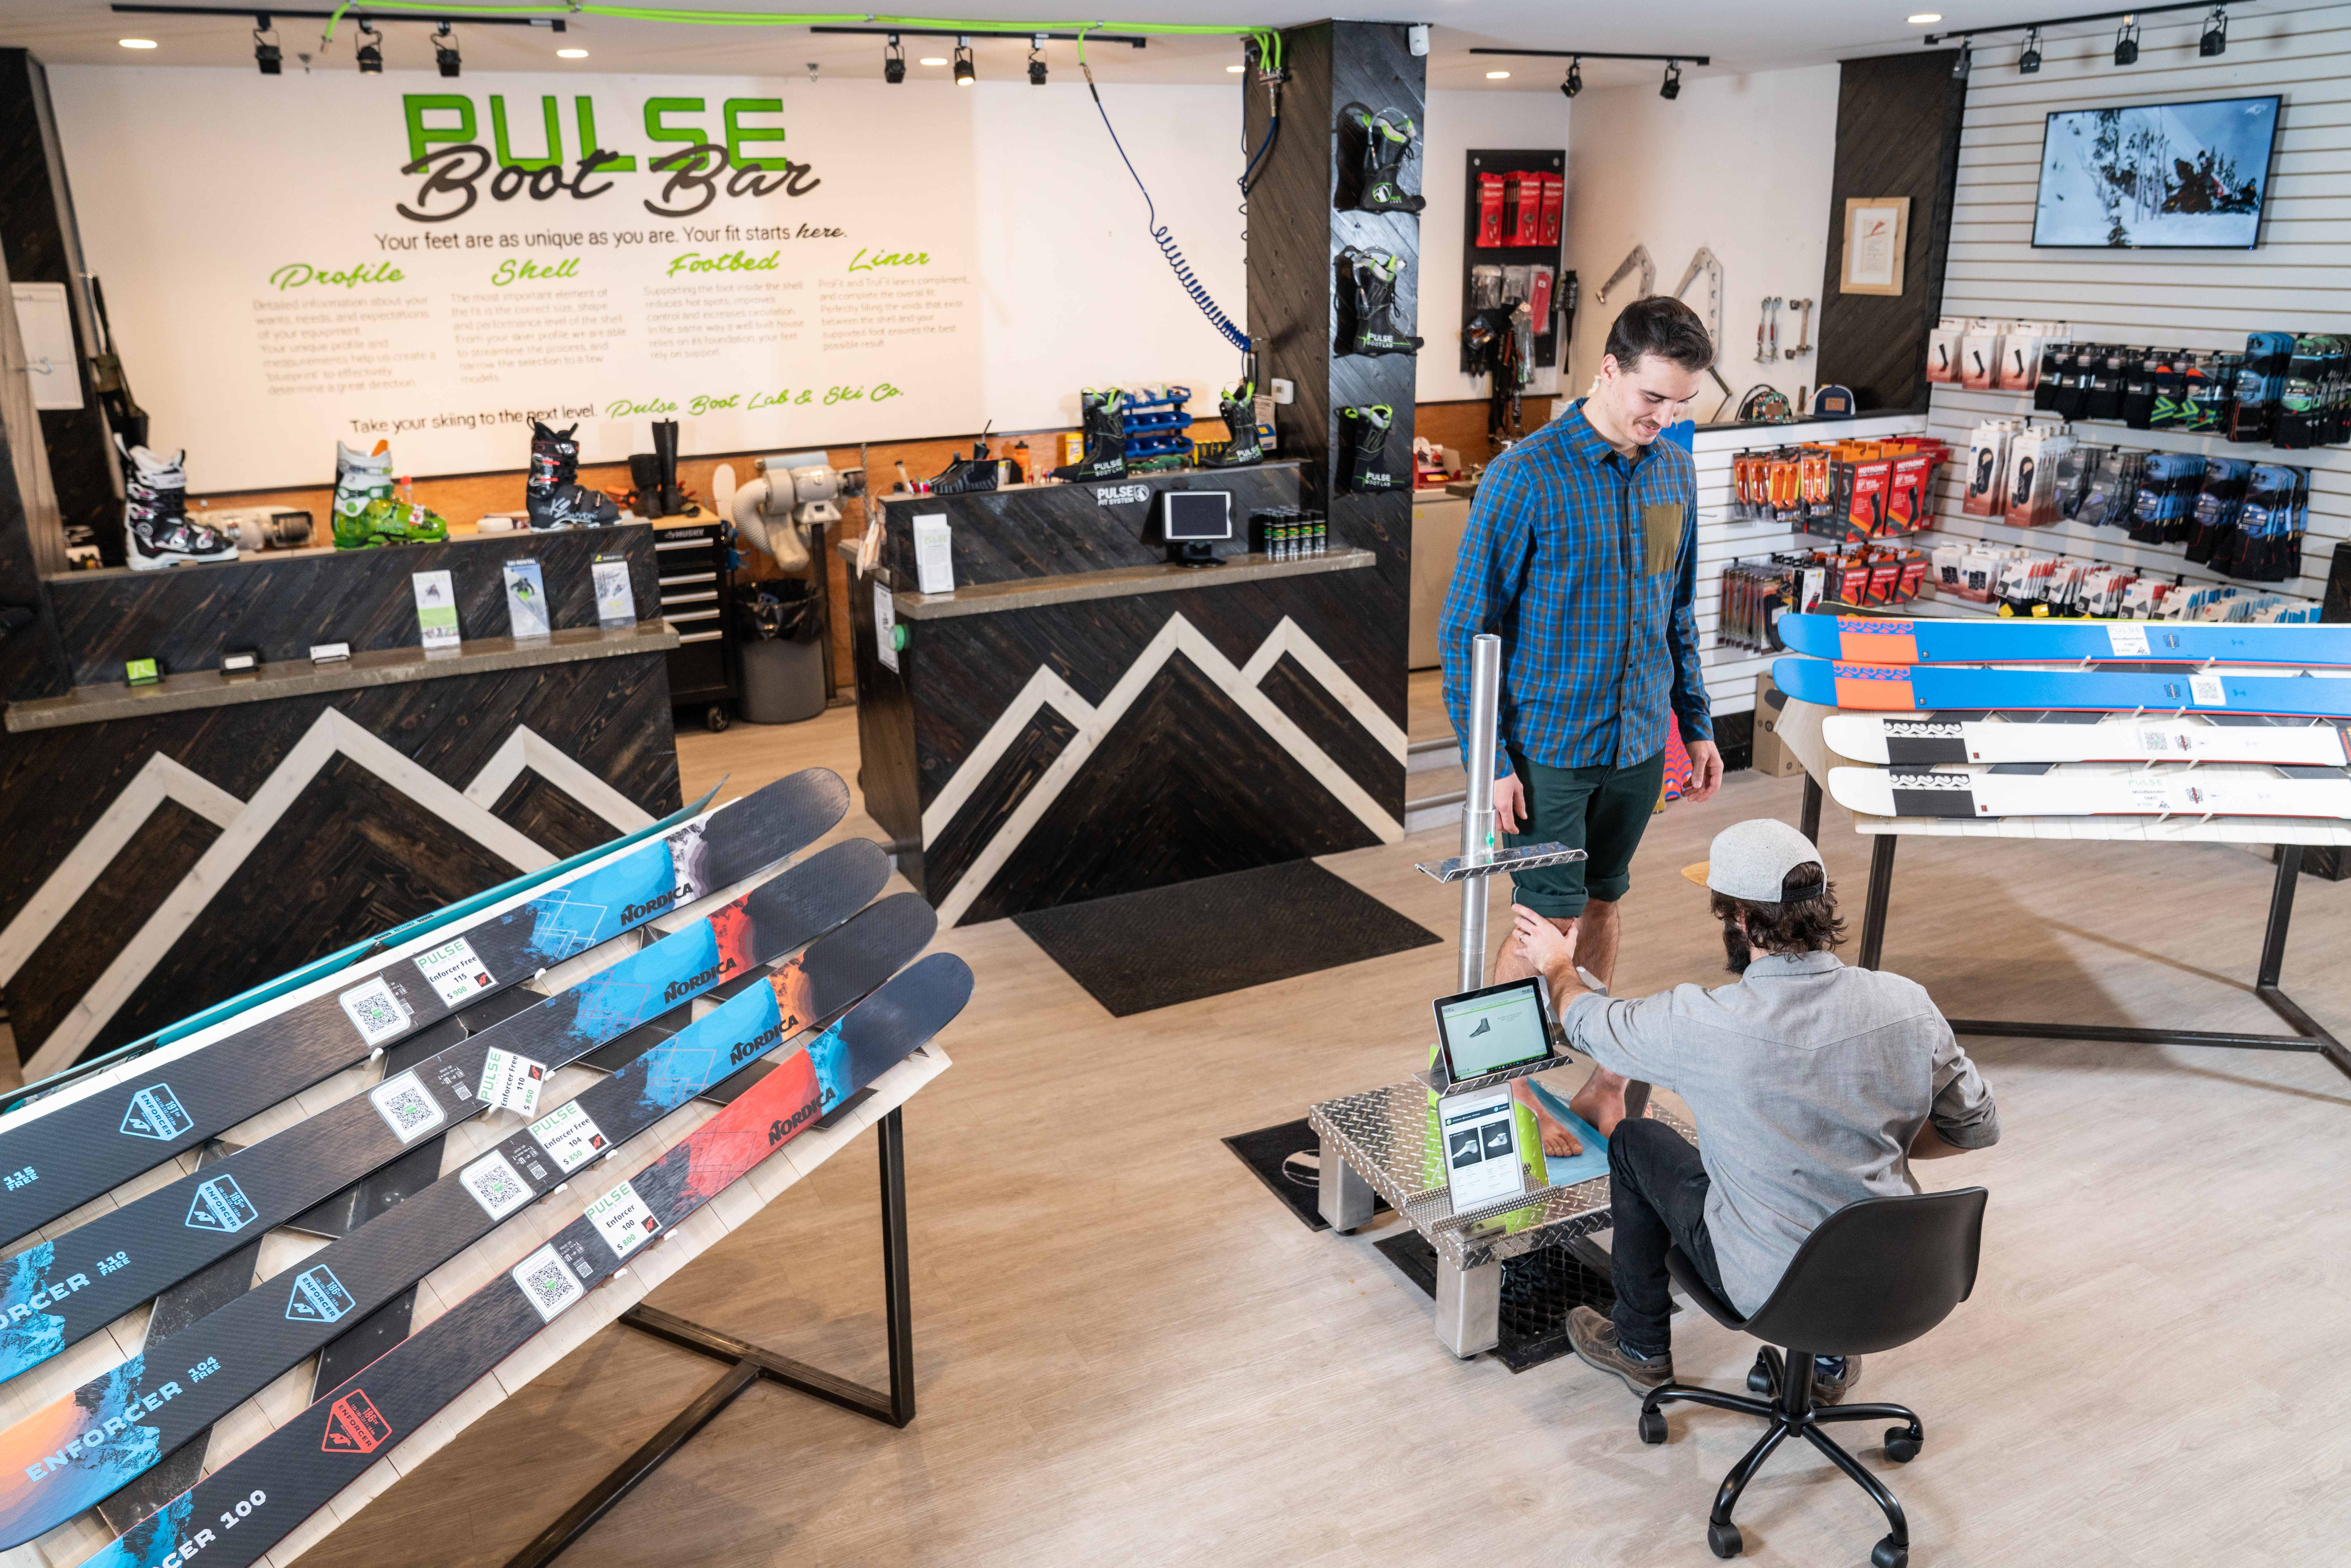 Image of customer receiving a boot fitting in store from a Pulse Boot employee